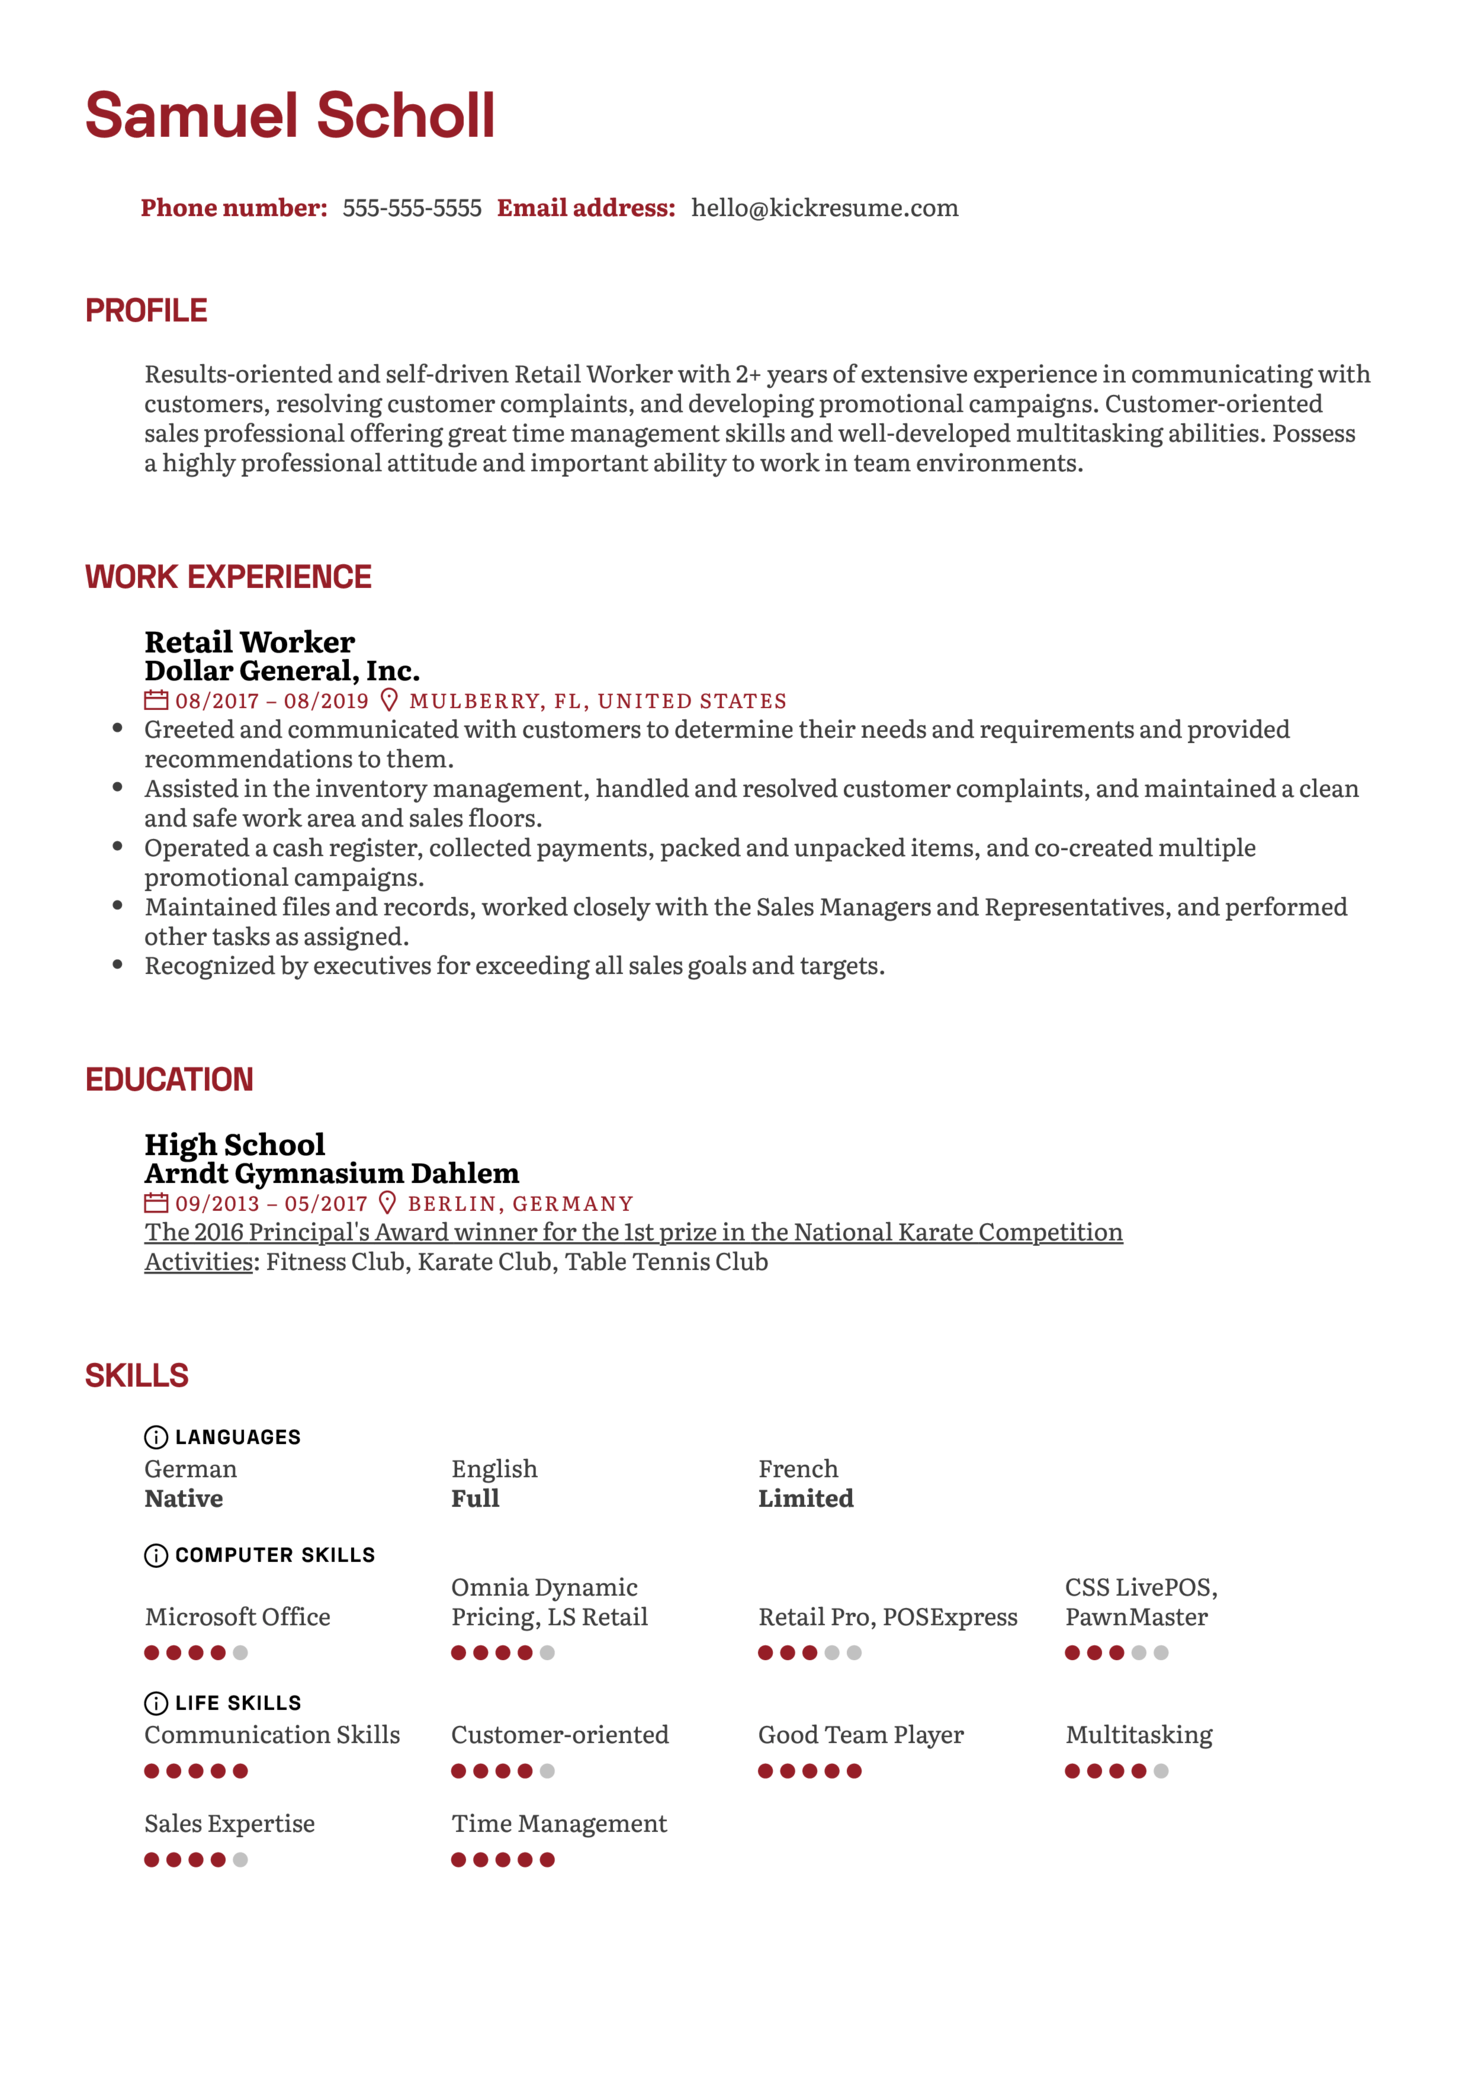 Retail Worker Resume Example (Part 1)